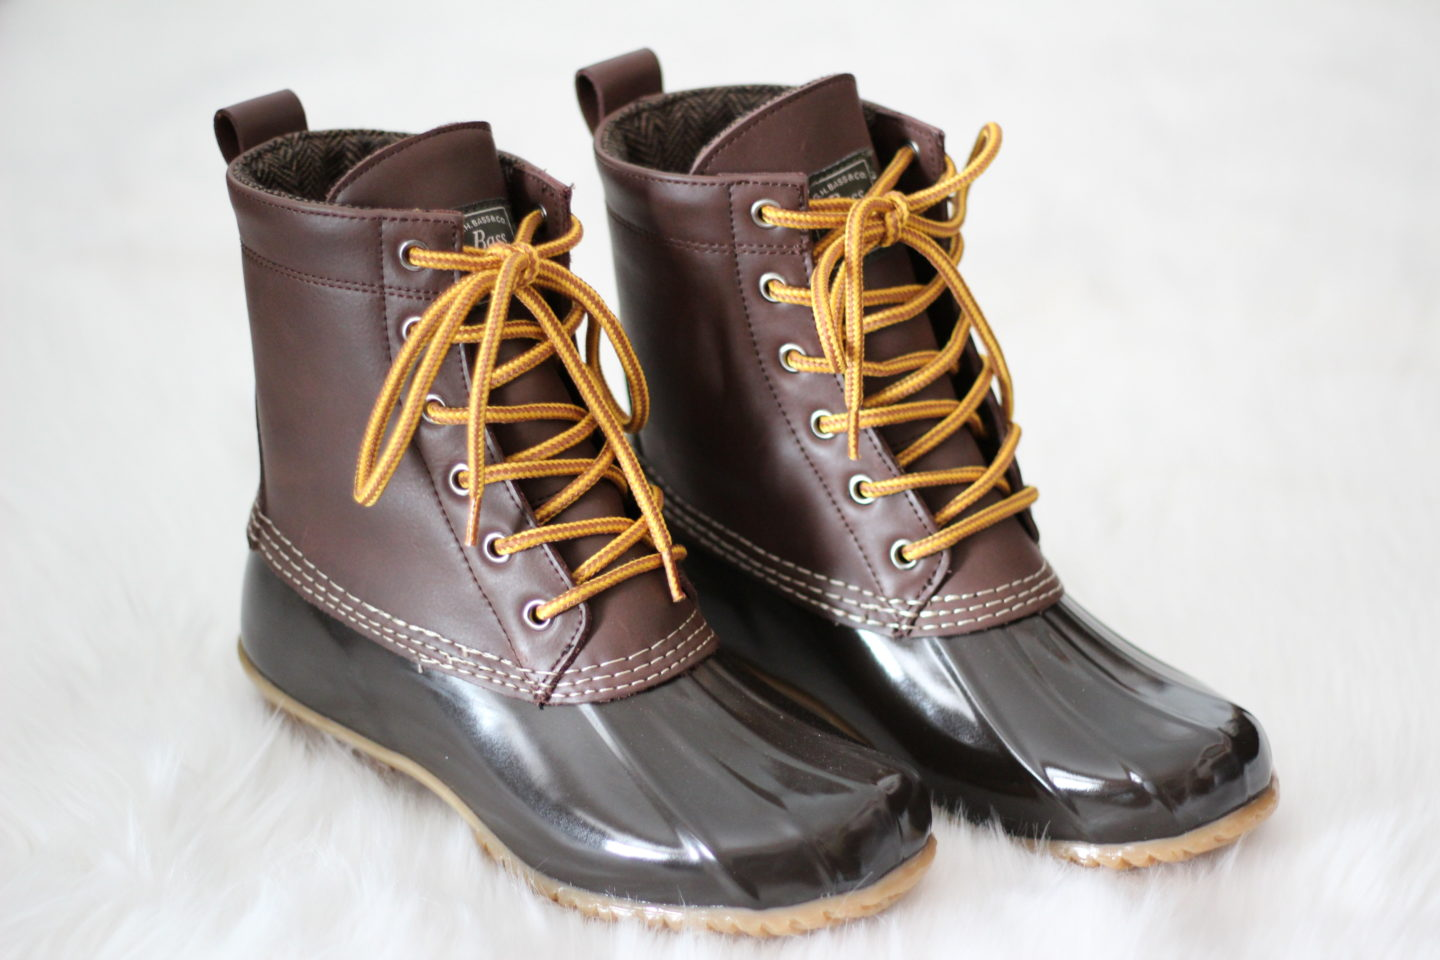 Bass Duck Boots - Chelsea de Castro - Fall and Winter Booties